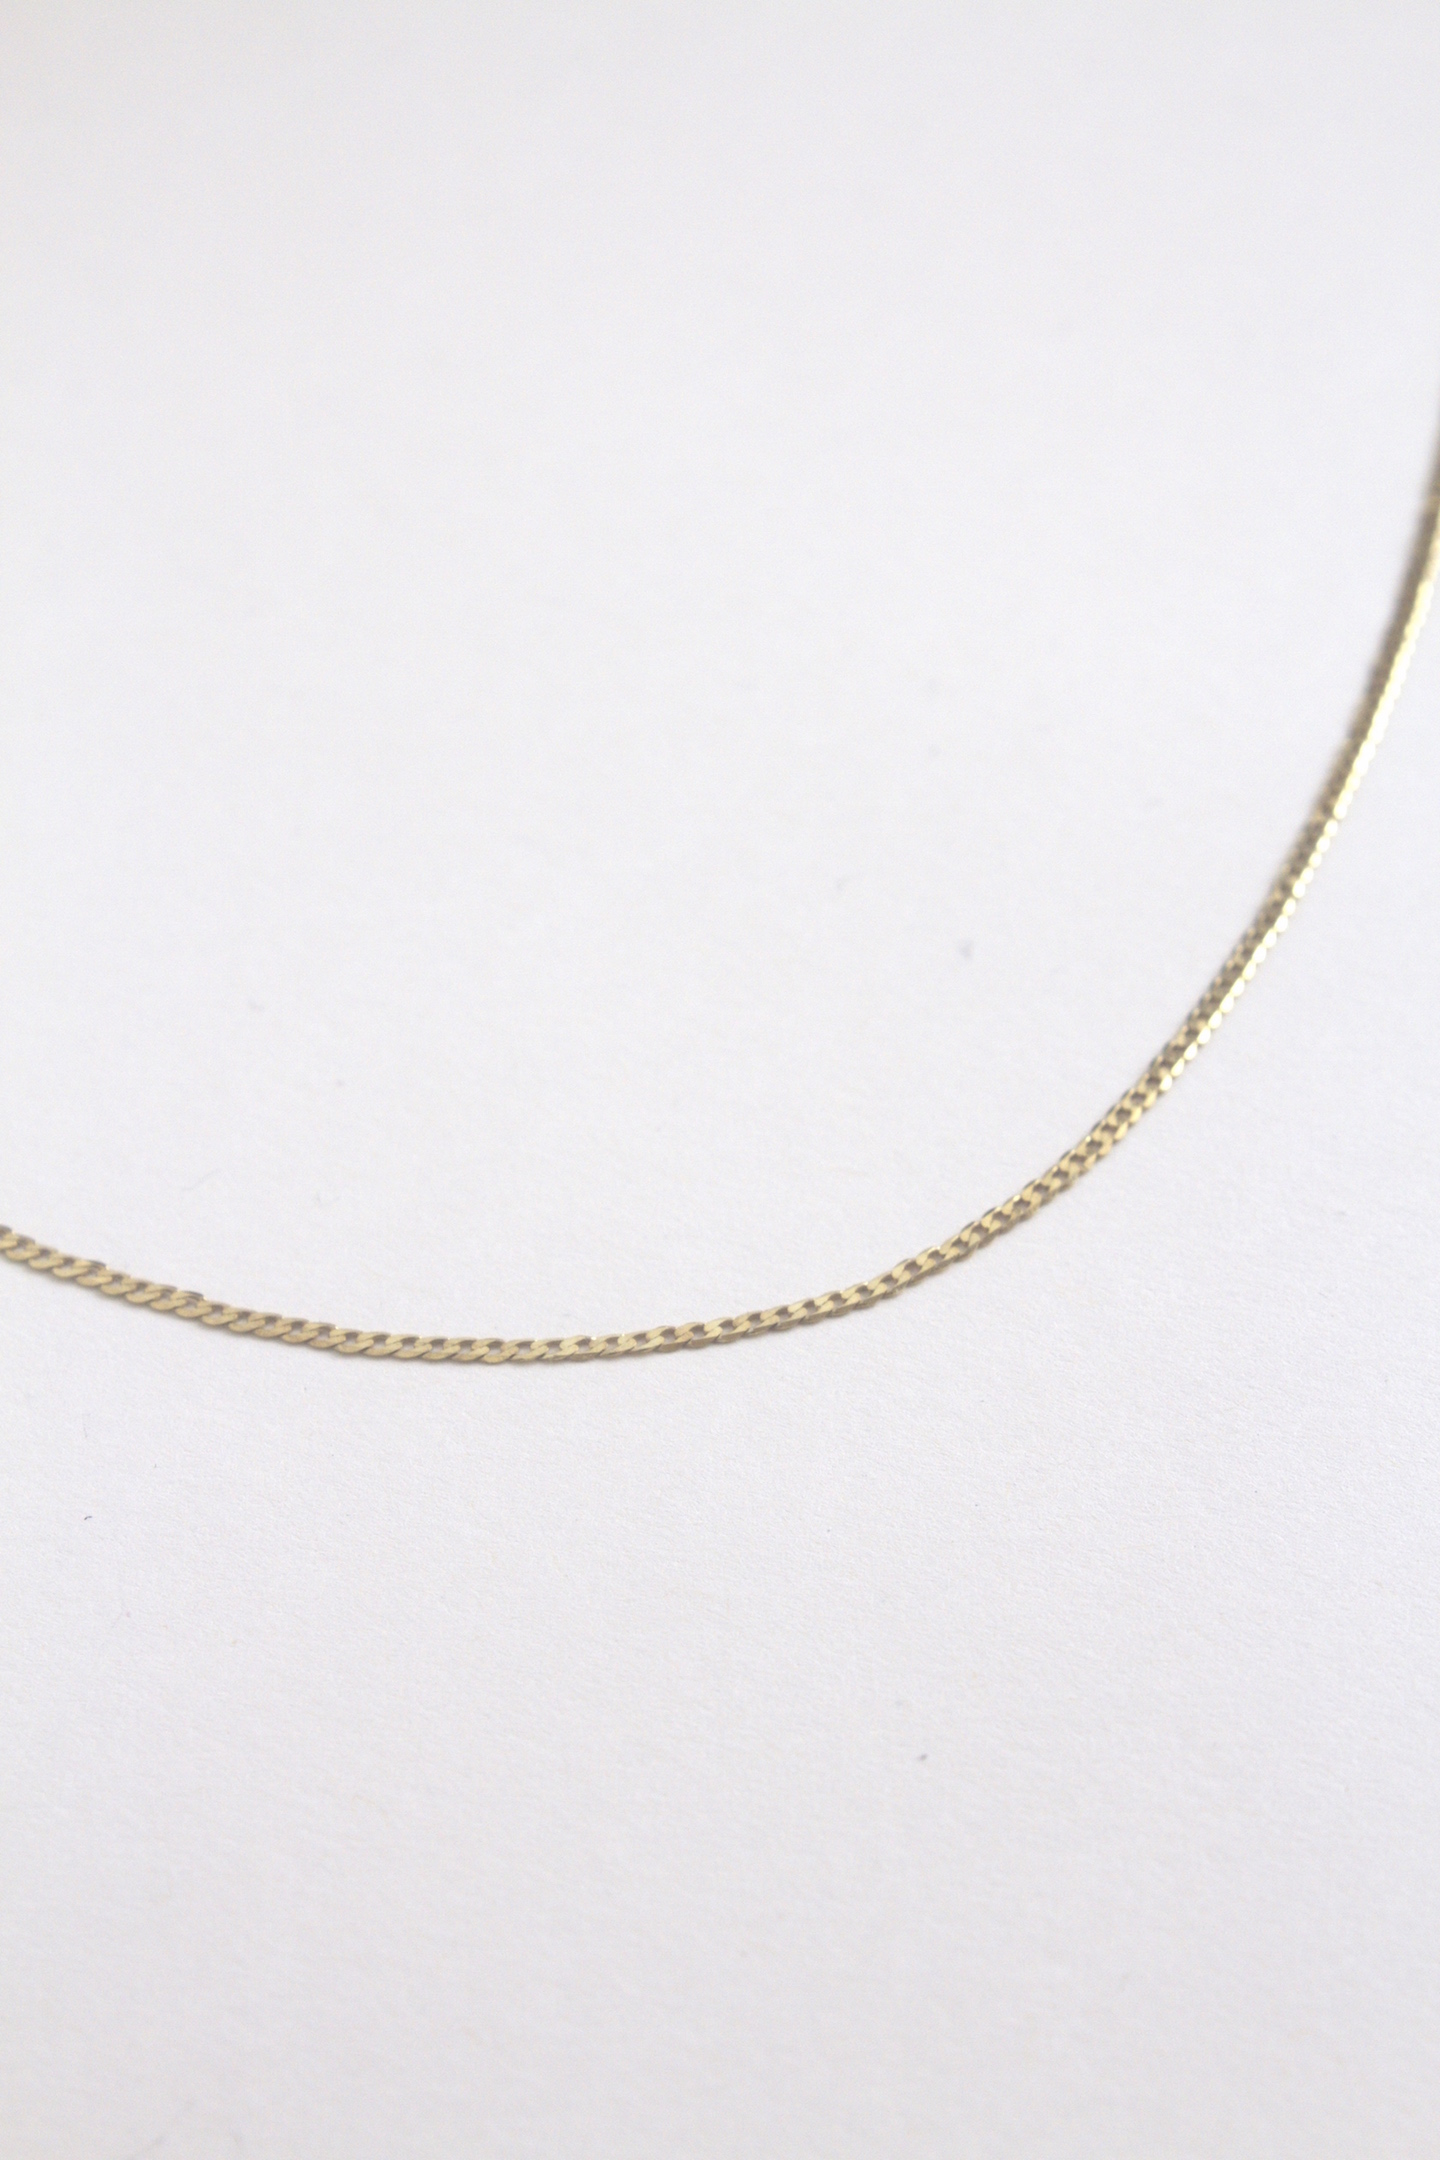 18ct Gold VermeilChain Necklace that could have once belonged to your boyfriend.  This necklaceis a plain gold plated sterling silver chain. Any of our Yellow Jewellery pendants can be added. The longer length is great for layering with our other chains from our collection.  Chain: 50cm length